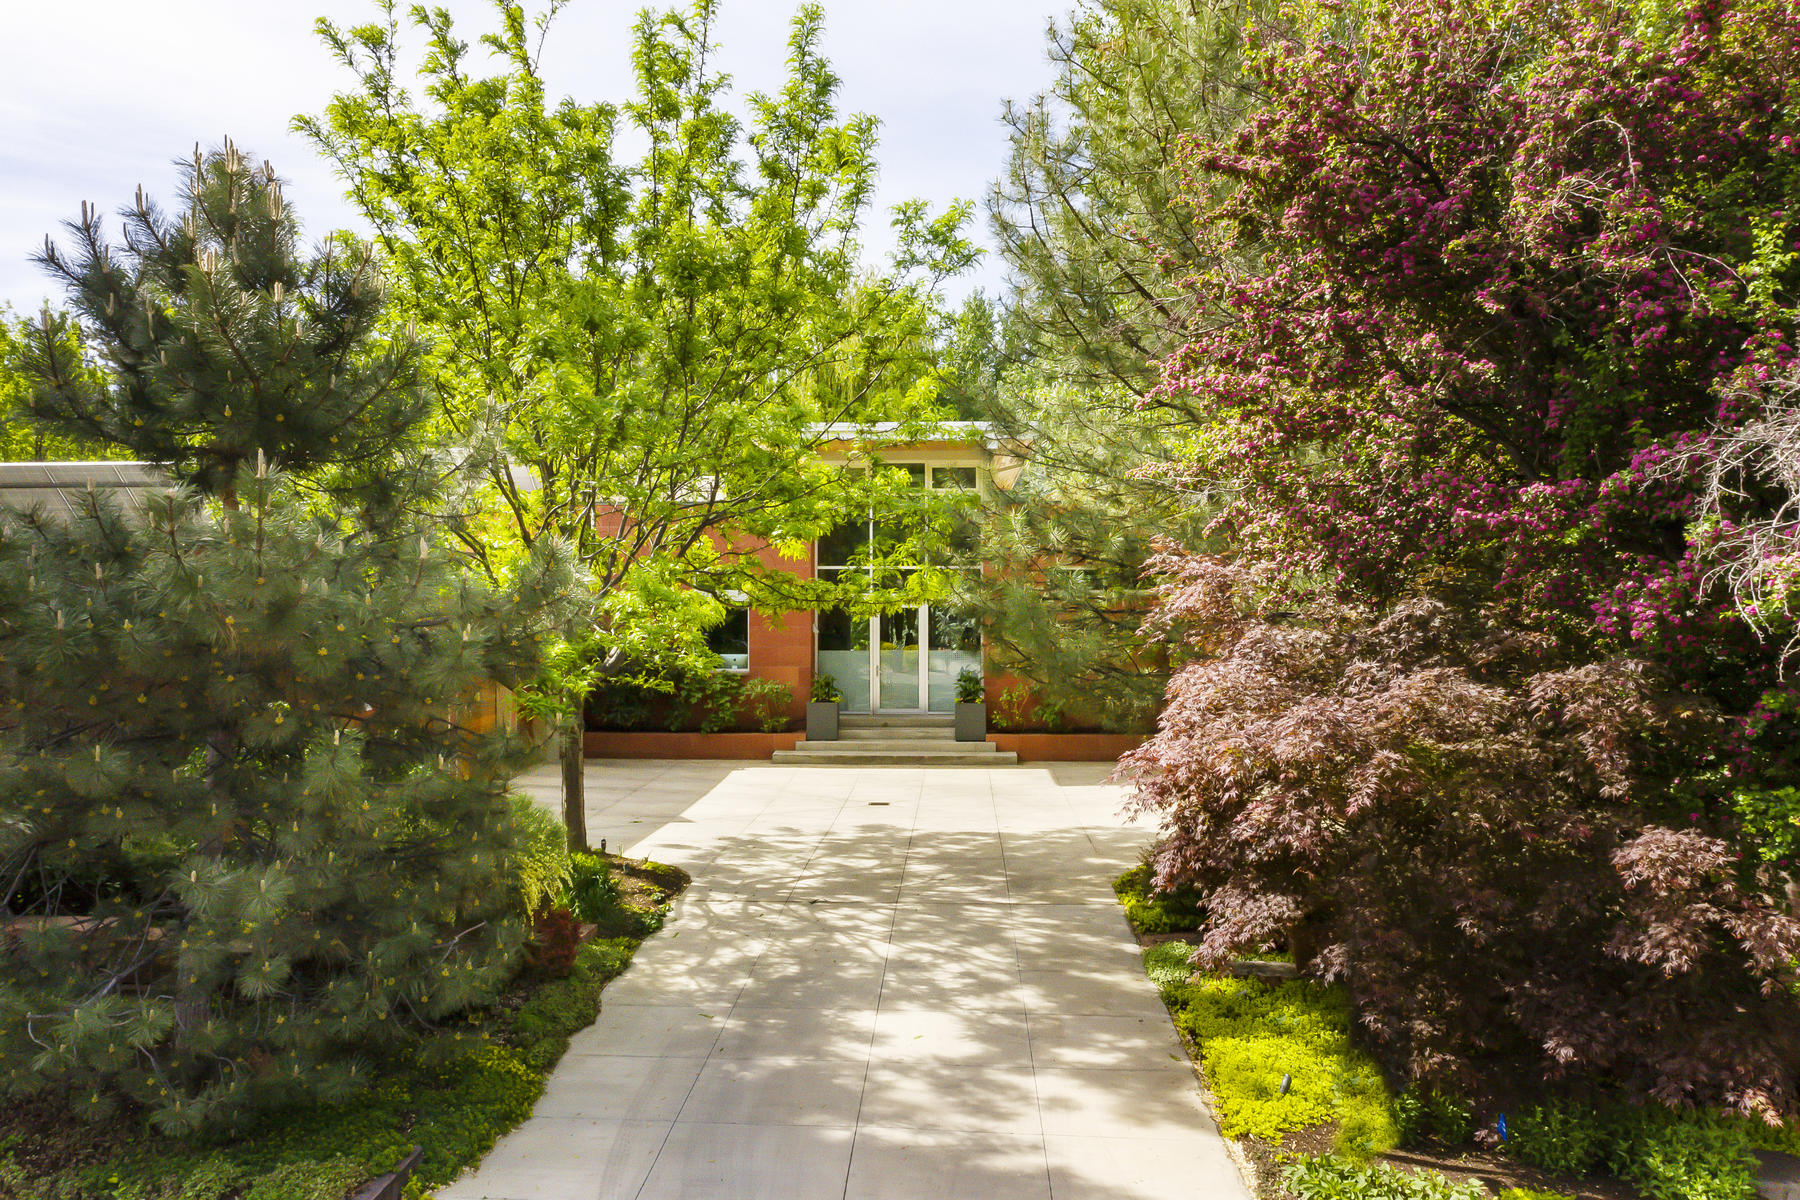 Single Family Homes for Sale at Contemporary Millcreek Masterpiece 1762 E Millcreek Way Salt Lake City, Utah 84106 United States